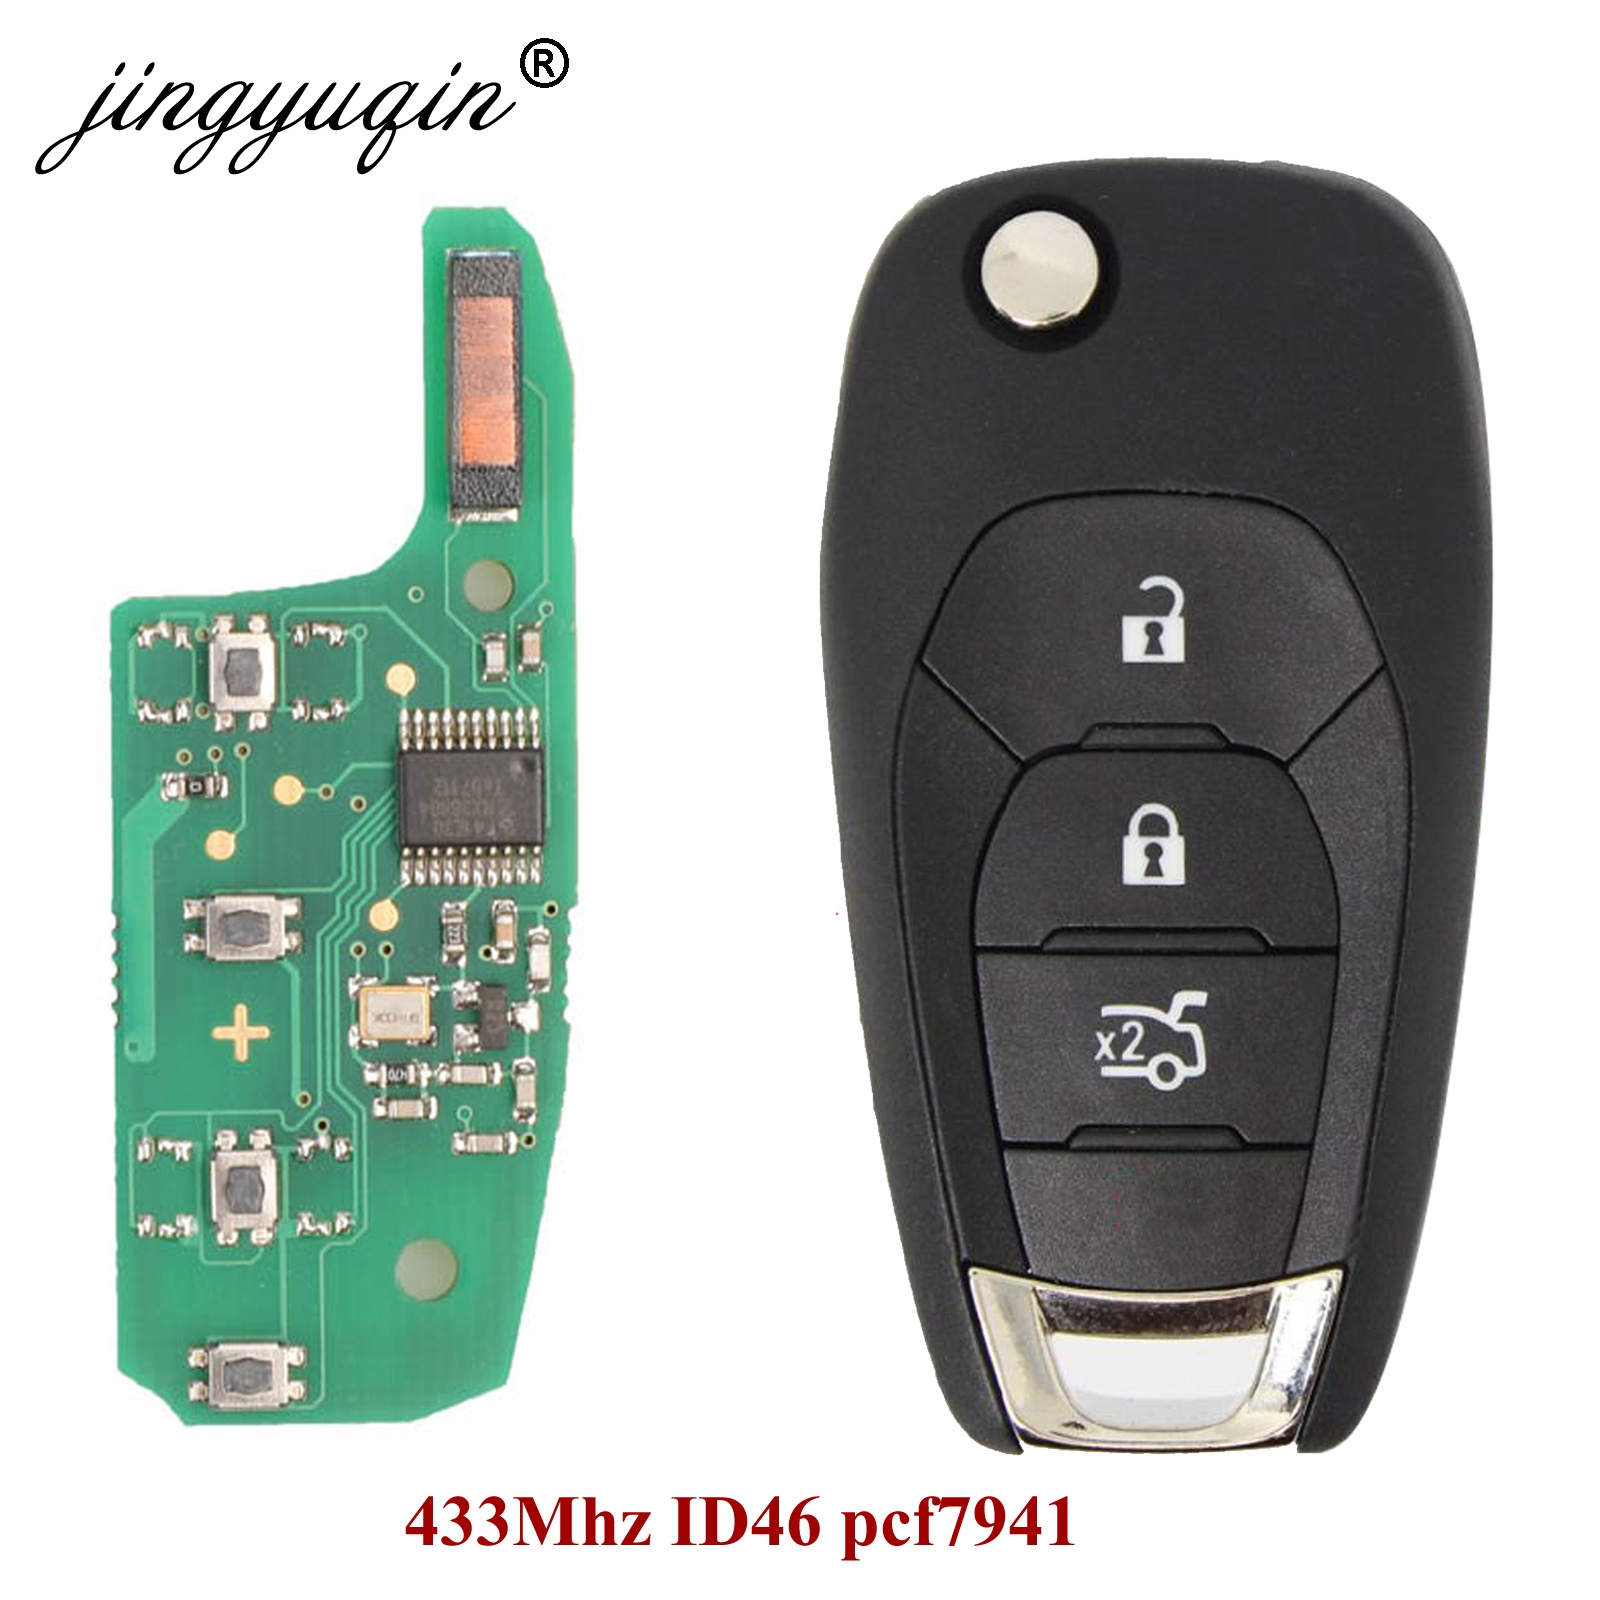 jingyuqin 20pcs For Chevrolet Cruze 3 Button Folding Flip Remote Smart Car Key Fob 315MHZ / 433MHZ ID46 PCF7941 Chip